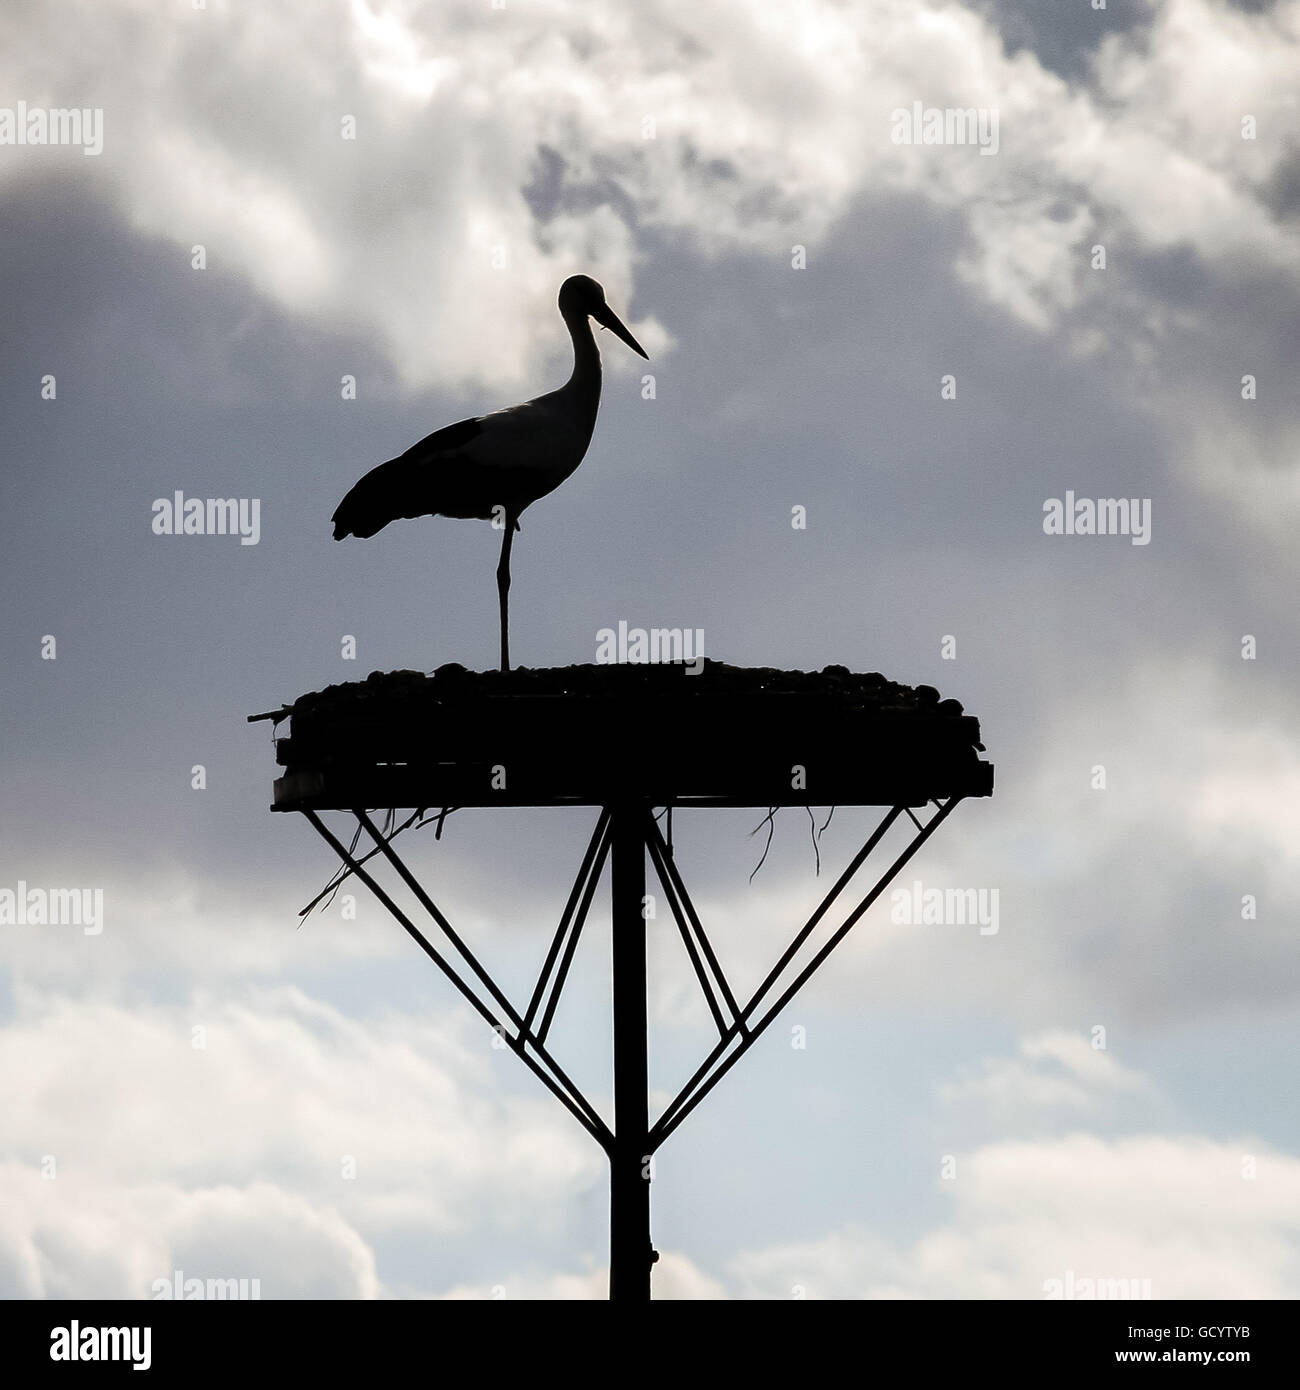 A White Stork seen on it's raised nest silhouetted against clouds in Bialystok, Poland. Stock Photo